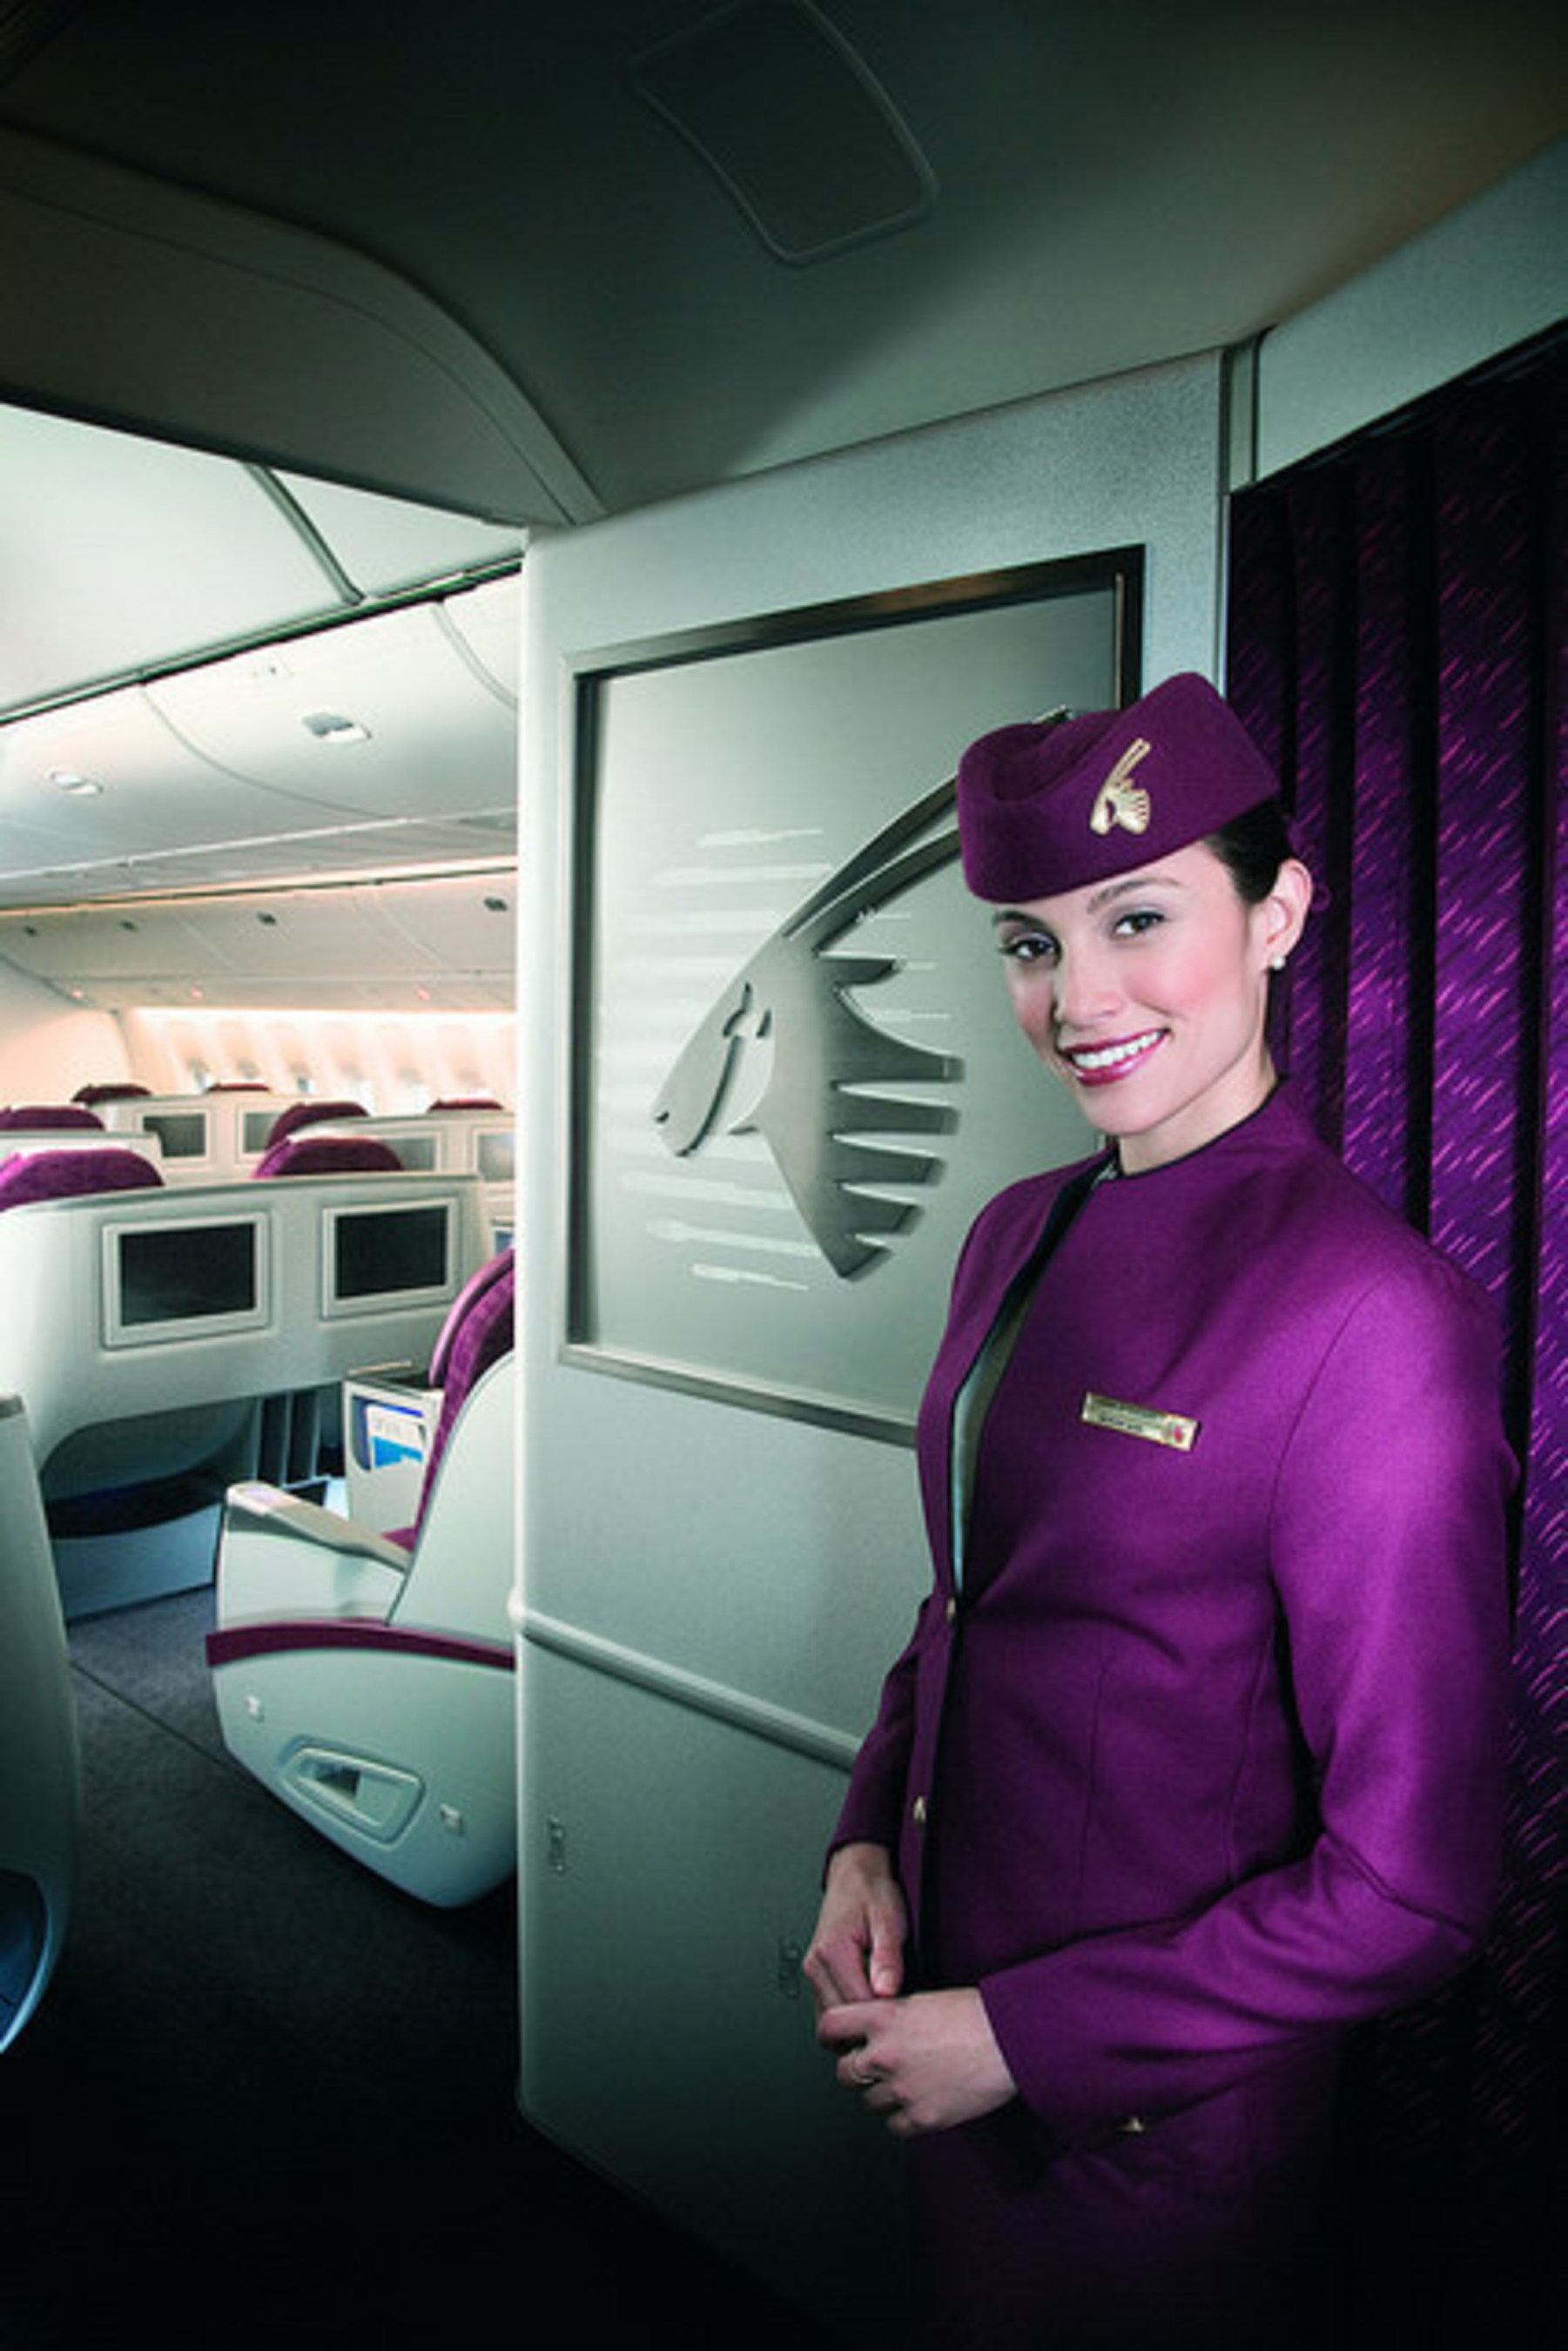 QATAR AIRWAYS HOSTS DISCOVERY POP-UP EVENT IN LOS ANGELES AHEAD OF JANUARY 2016 LAUNCH